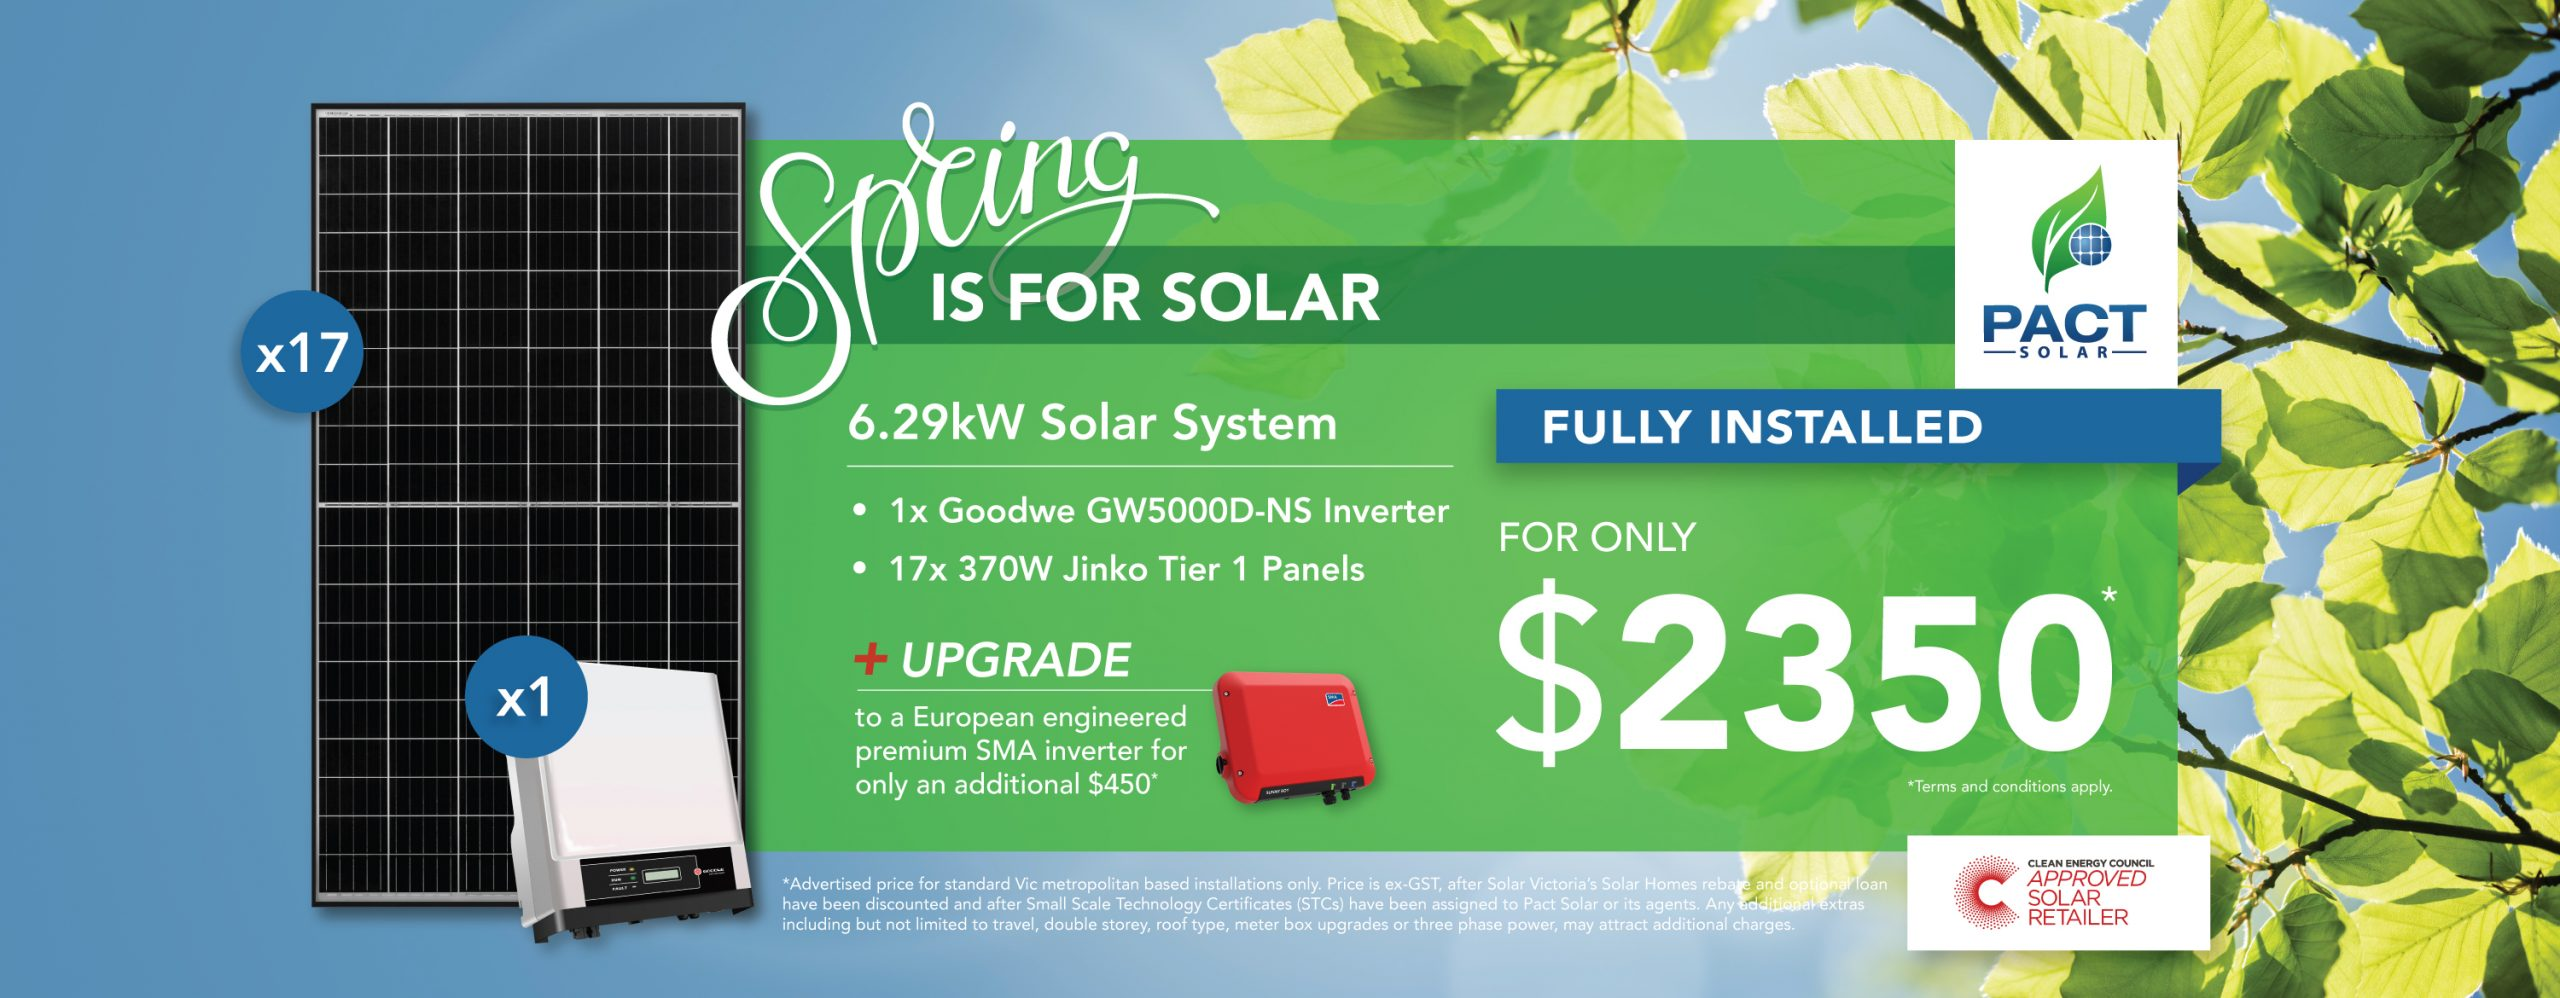 http://pactsolar.com.au/wp-content/uploads/2021/09/Spring-Solar-Promo-21_Banner_Final_NEW-scaled.jpg